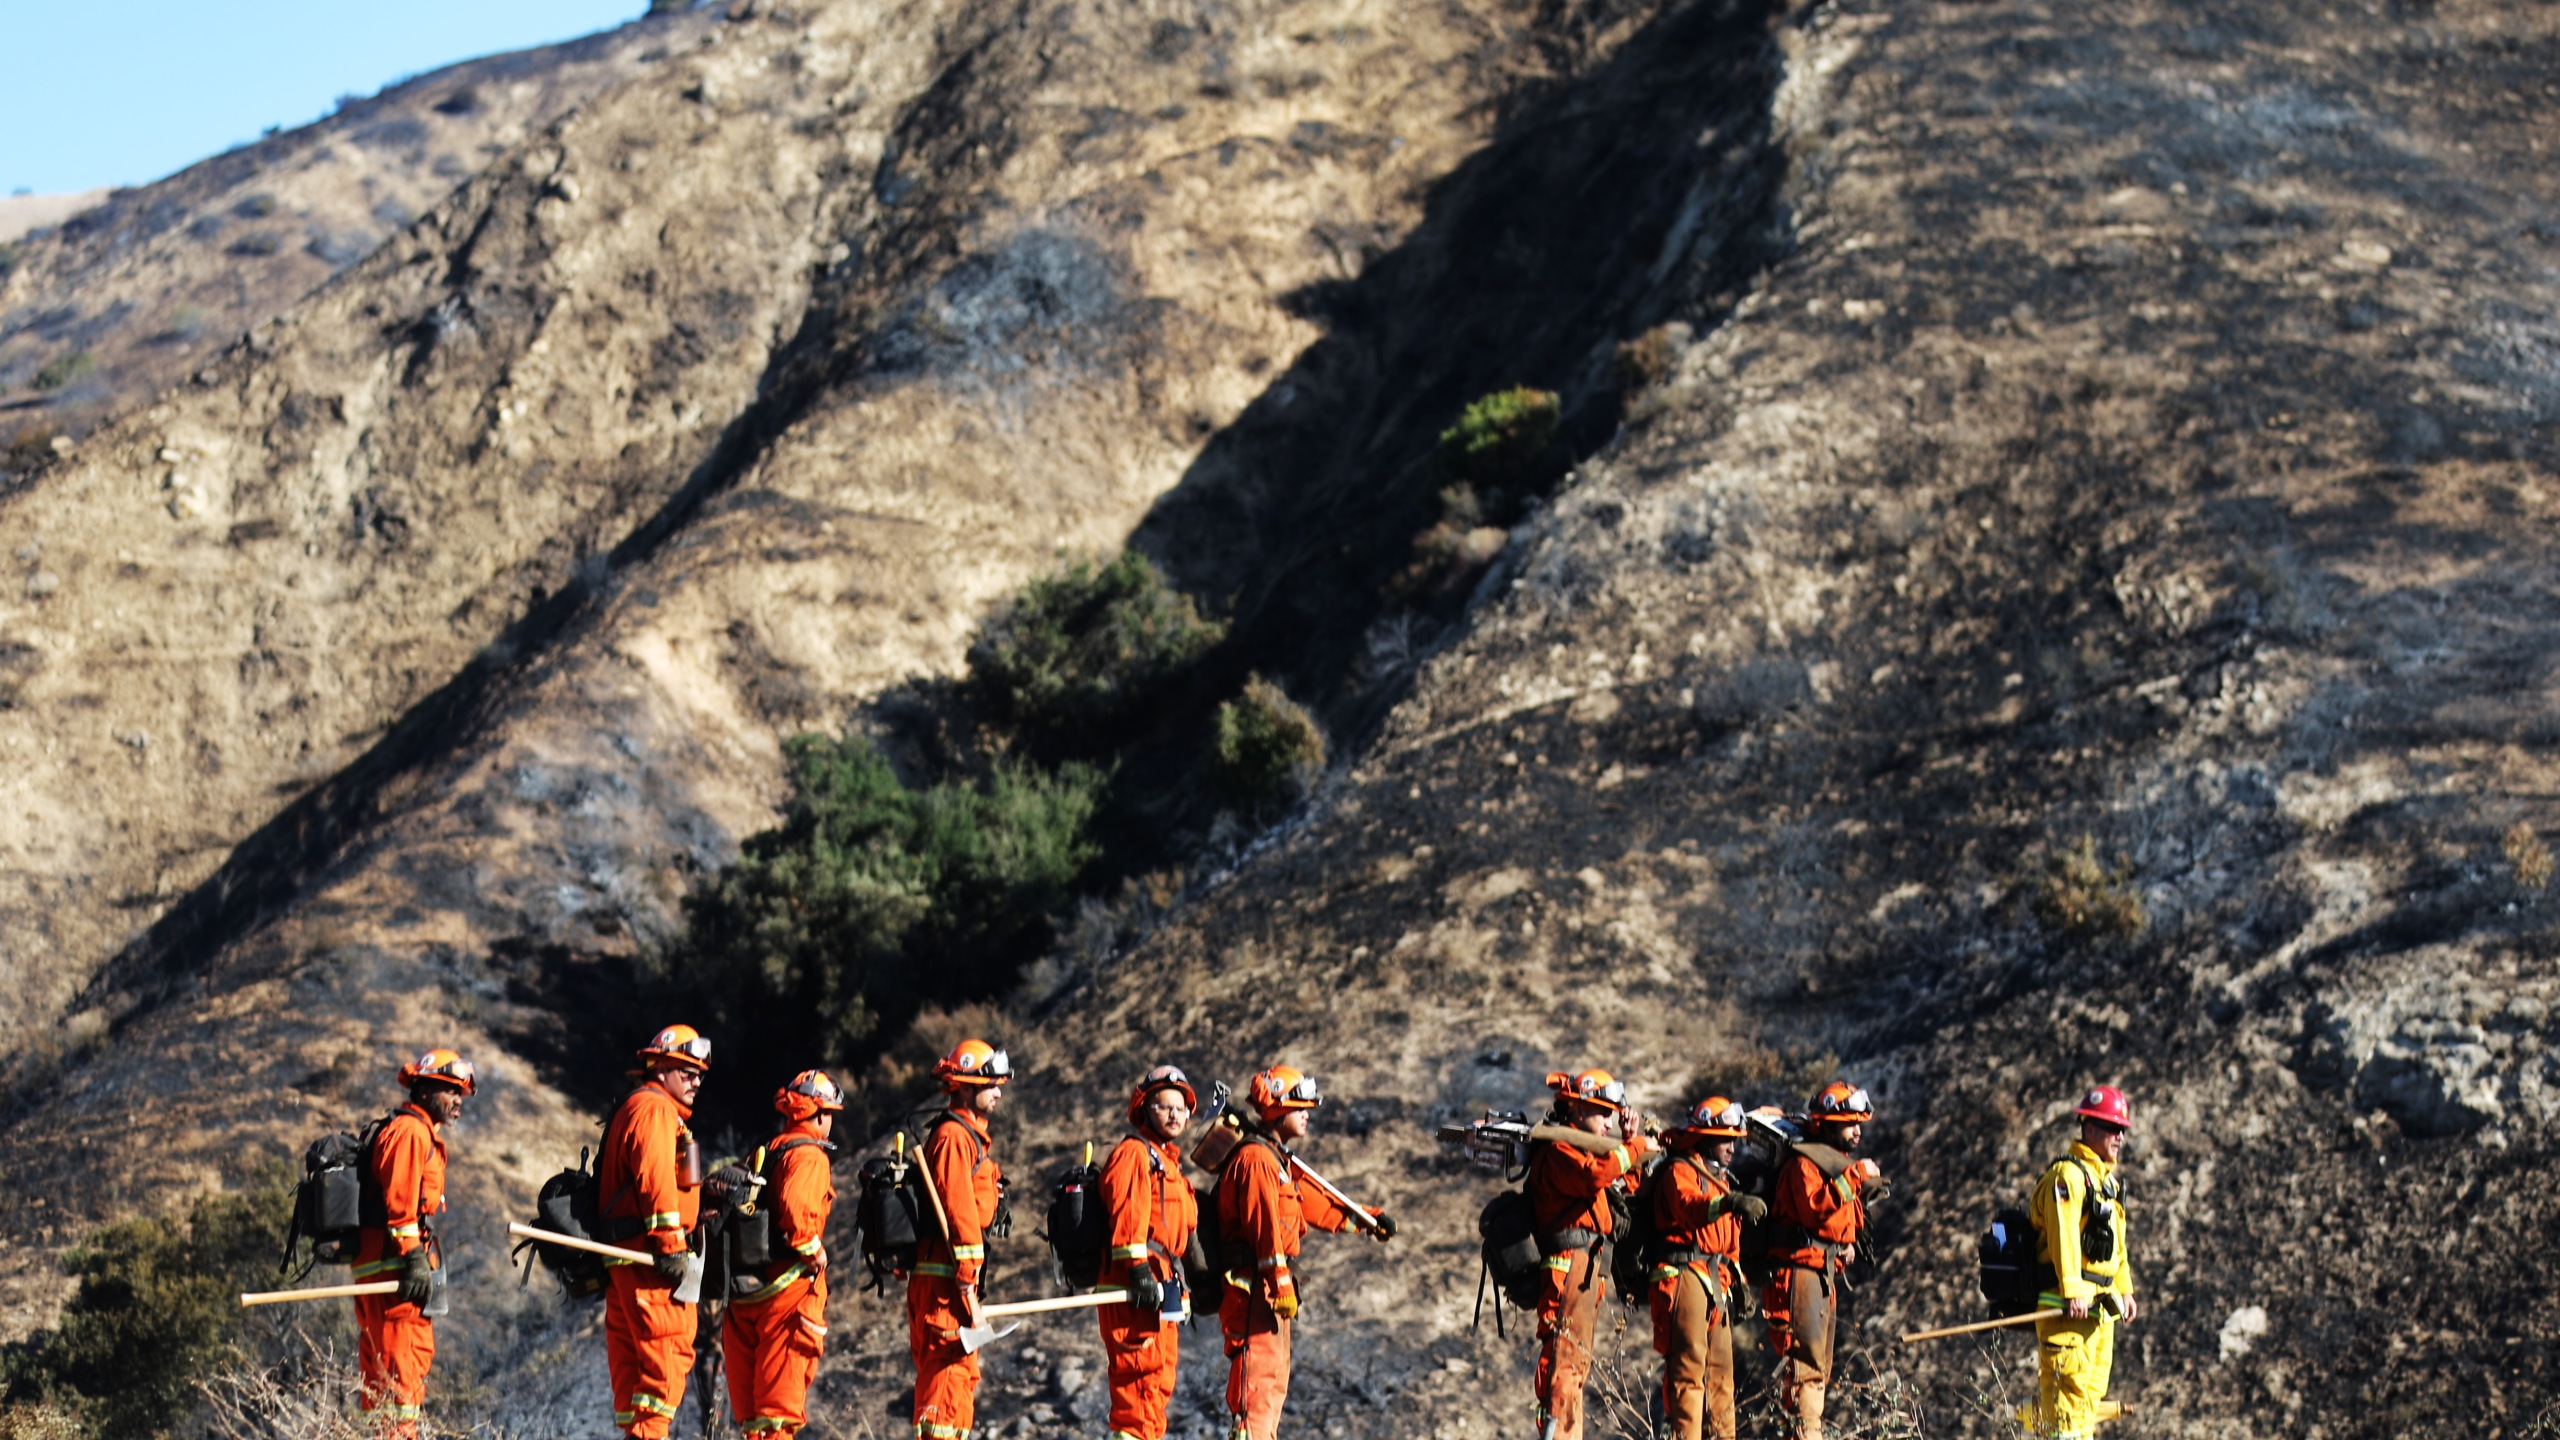 An inmate firefighter crew from Prado Conservation Camp, led by a fire captain (R), prepare to put out hot spots from the Saddleridge Fire on Oct. 12, 2019, in Porter Ranch, California. (Credit: Mario Tama/Getty Images)